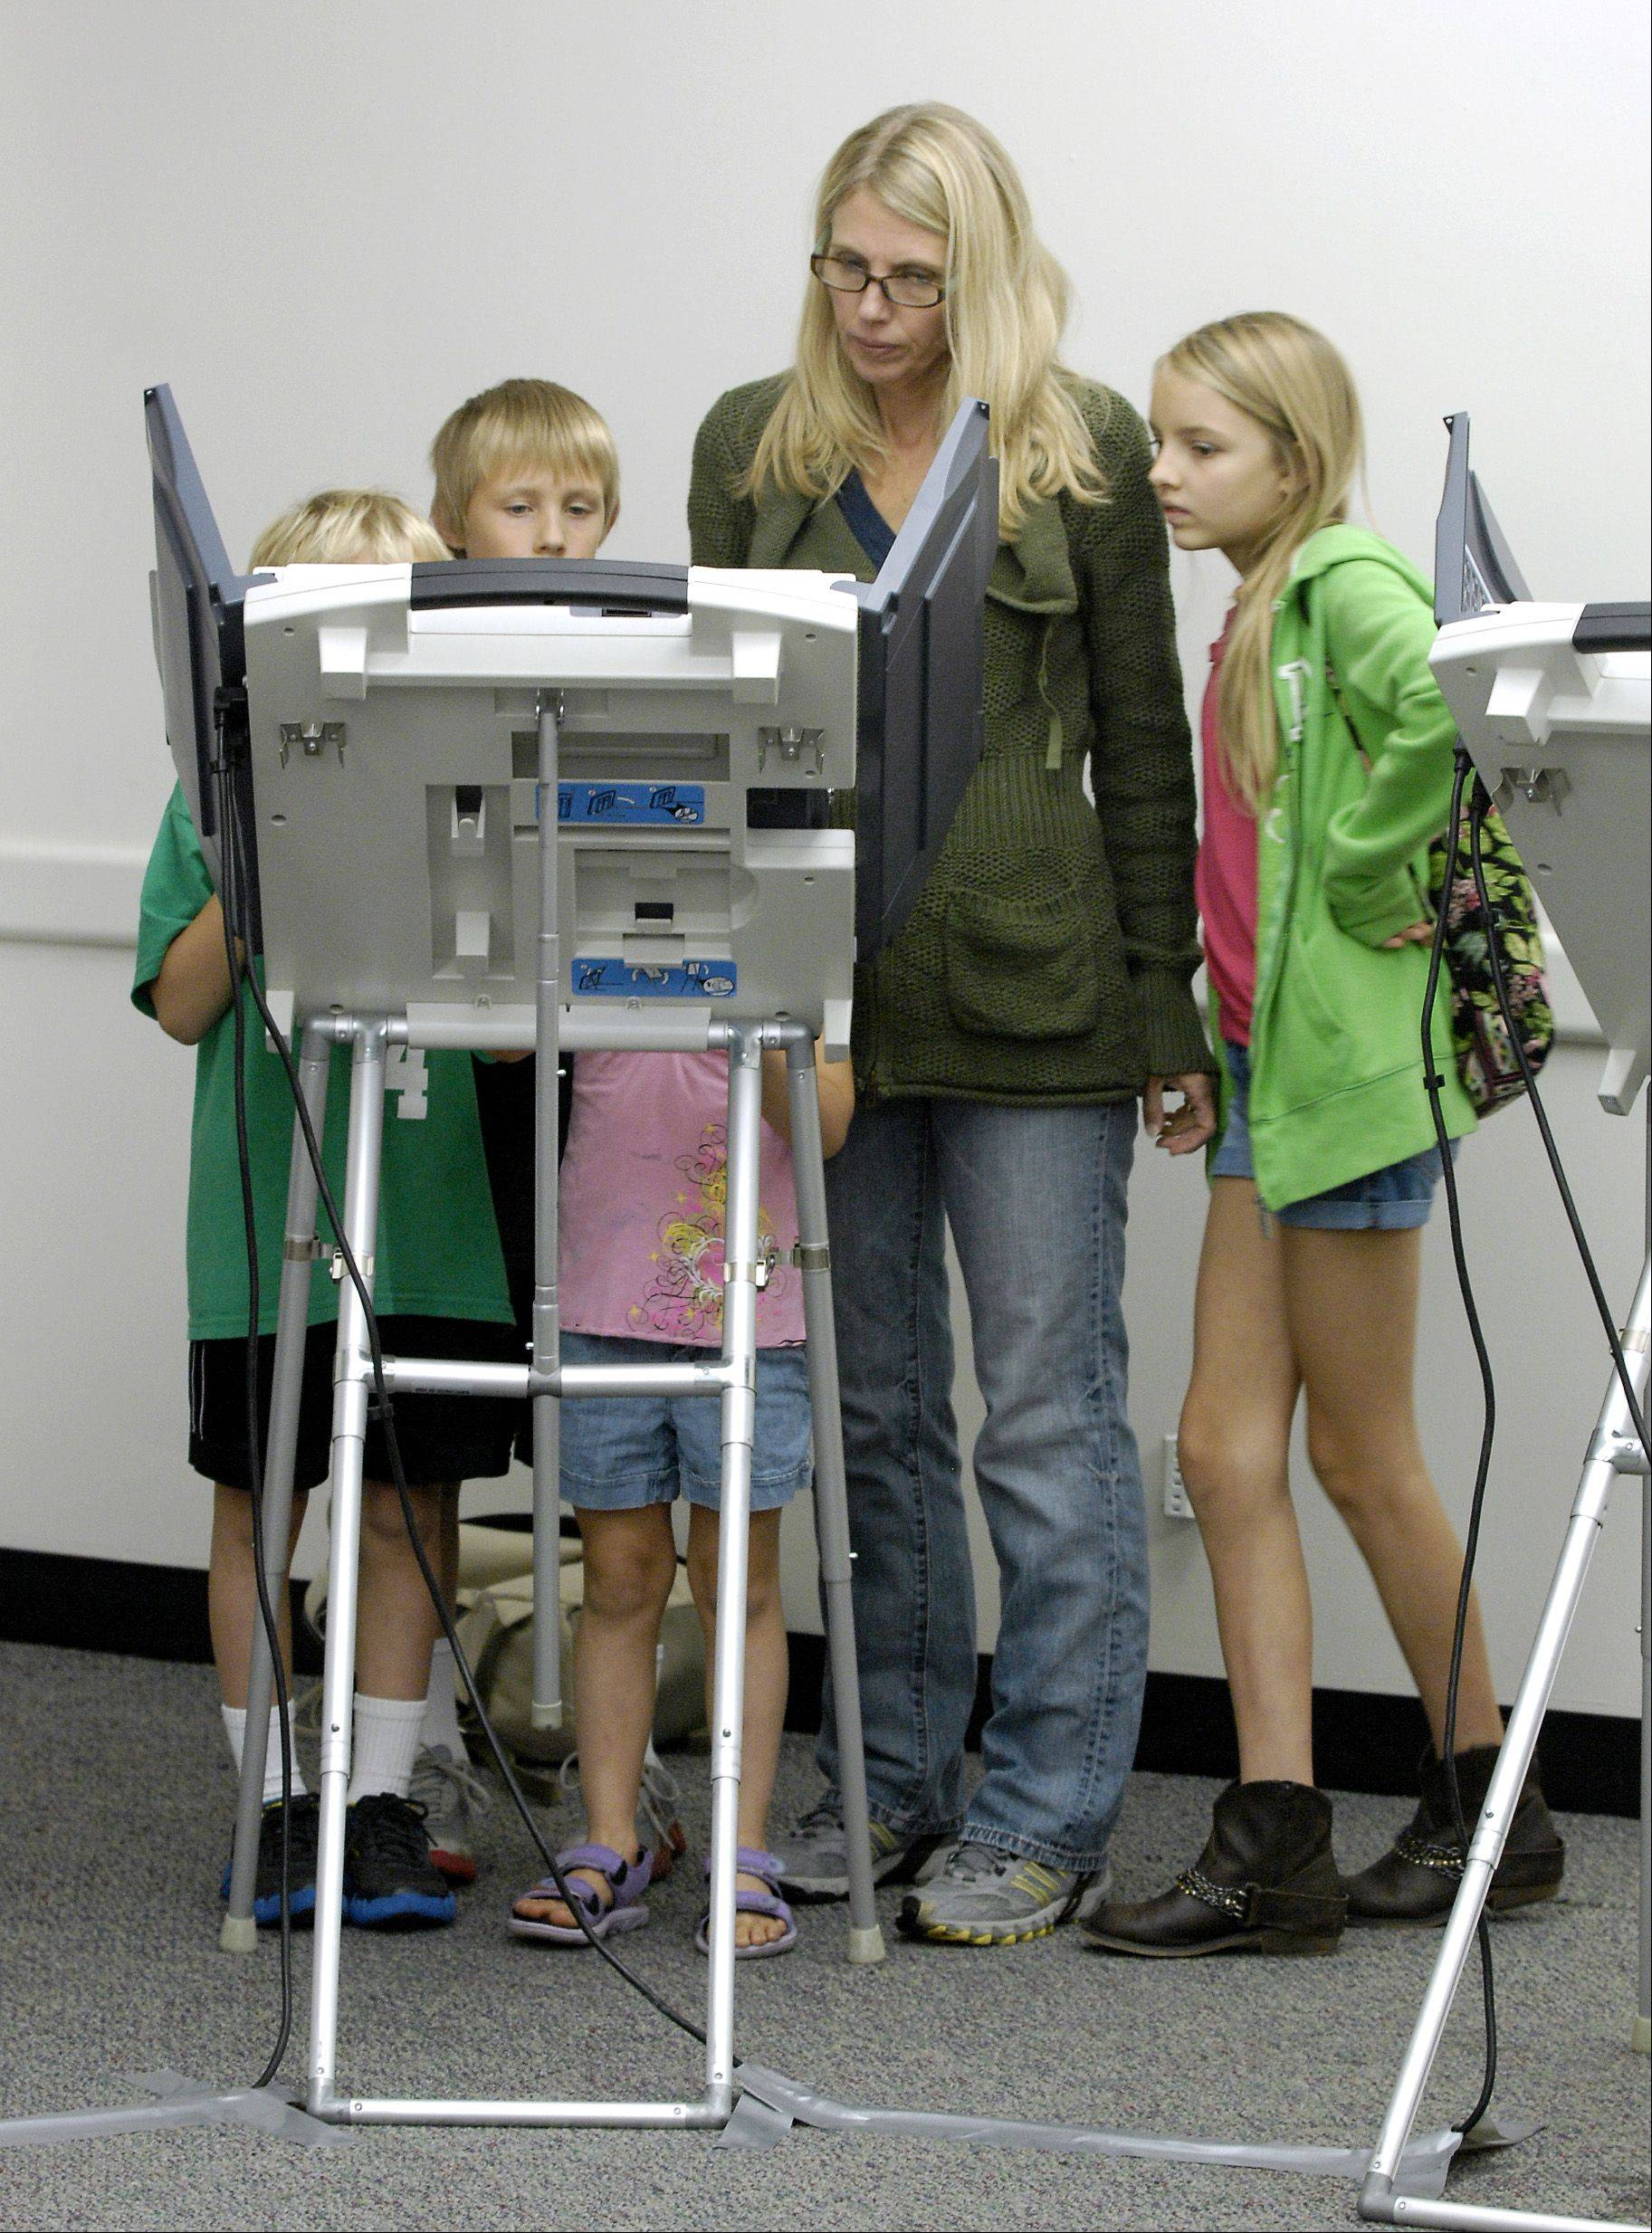 Laura Penosky of Wheaton casts her early ballot Monday at the DuPage County government building in Wheaton with her children Daniel, 9, Liberty, 11, Patrick, 7, and Dawn, 5, by her side. Penosky's 21-year-old daughter, Lydia, voted for the first time at another booth.